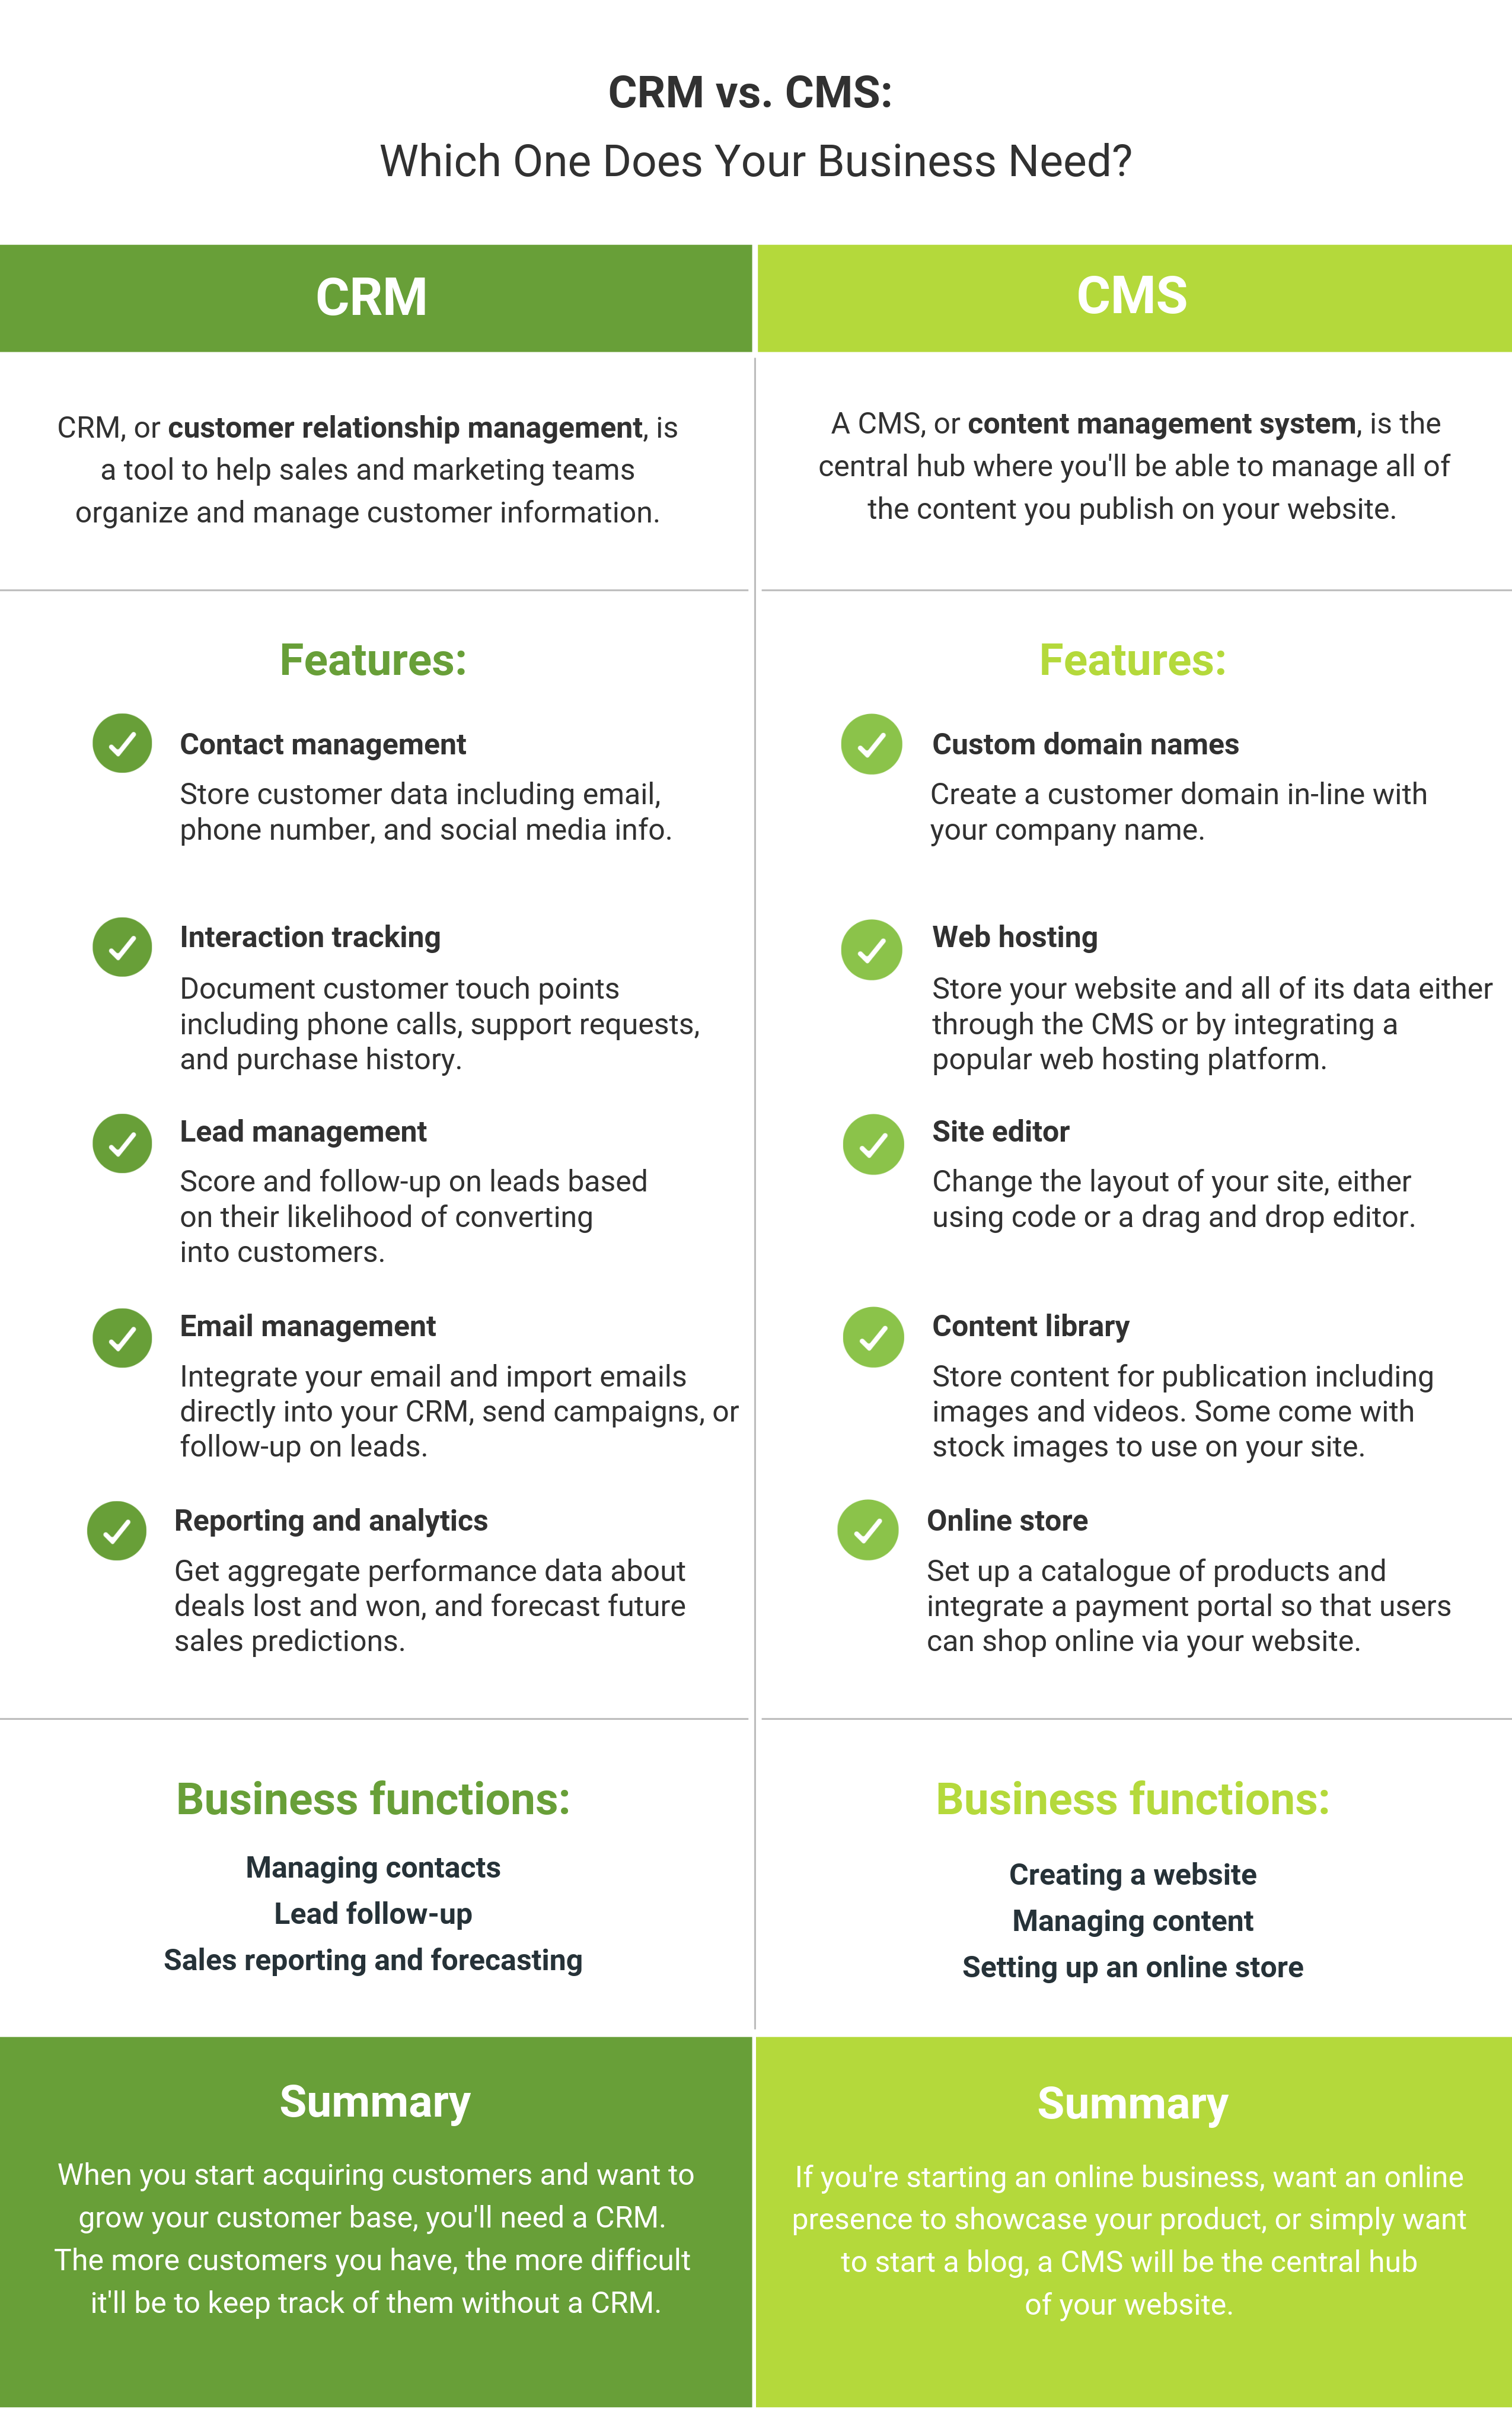 Graphic: Key differences between CRM and CMS